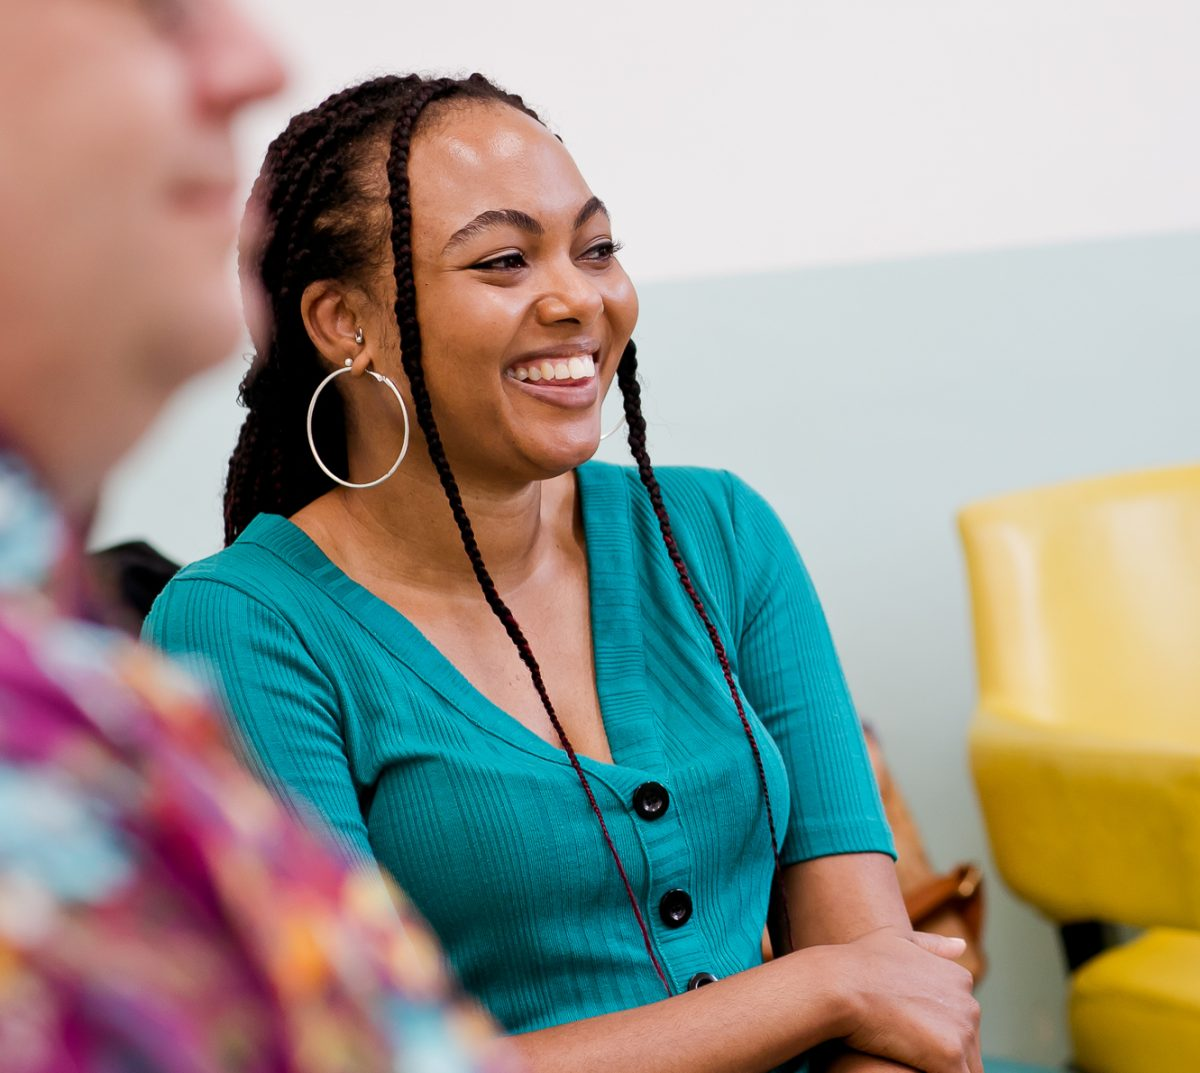 Woman smiling during group therapy